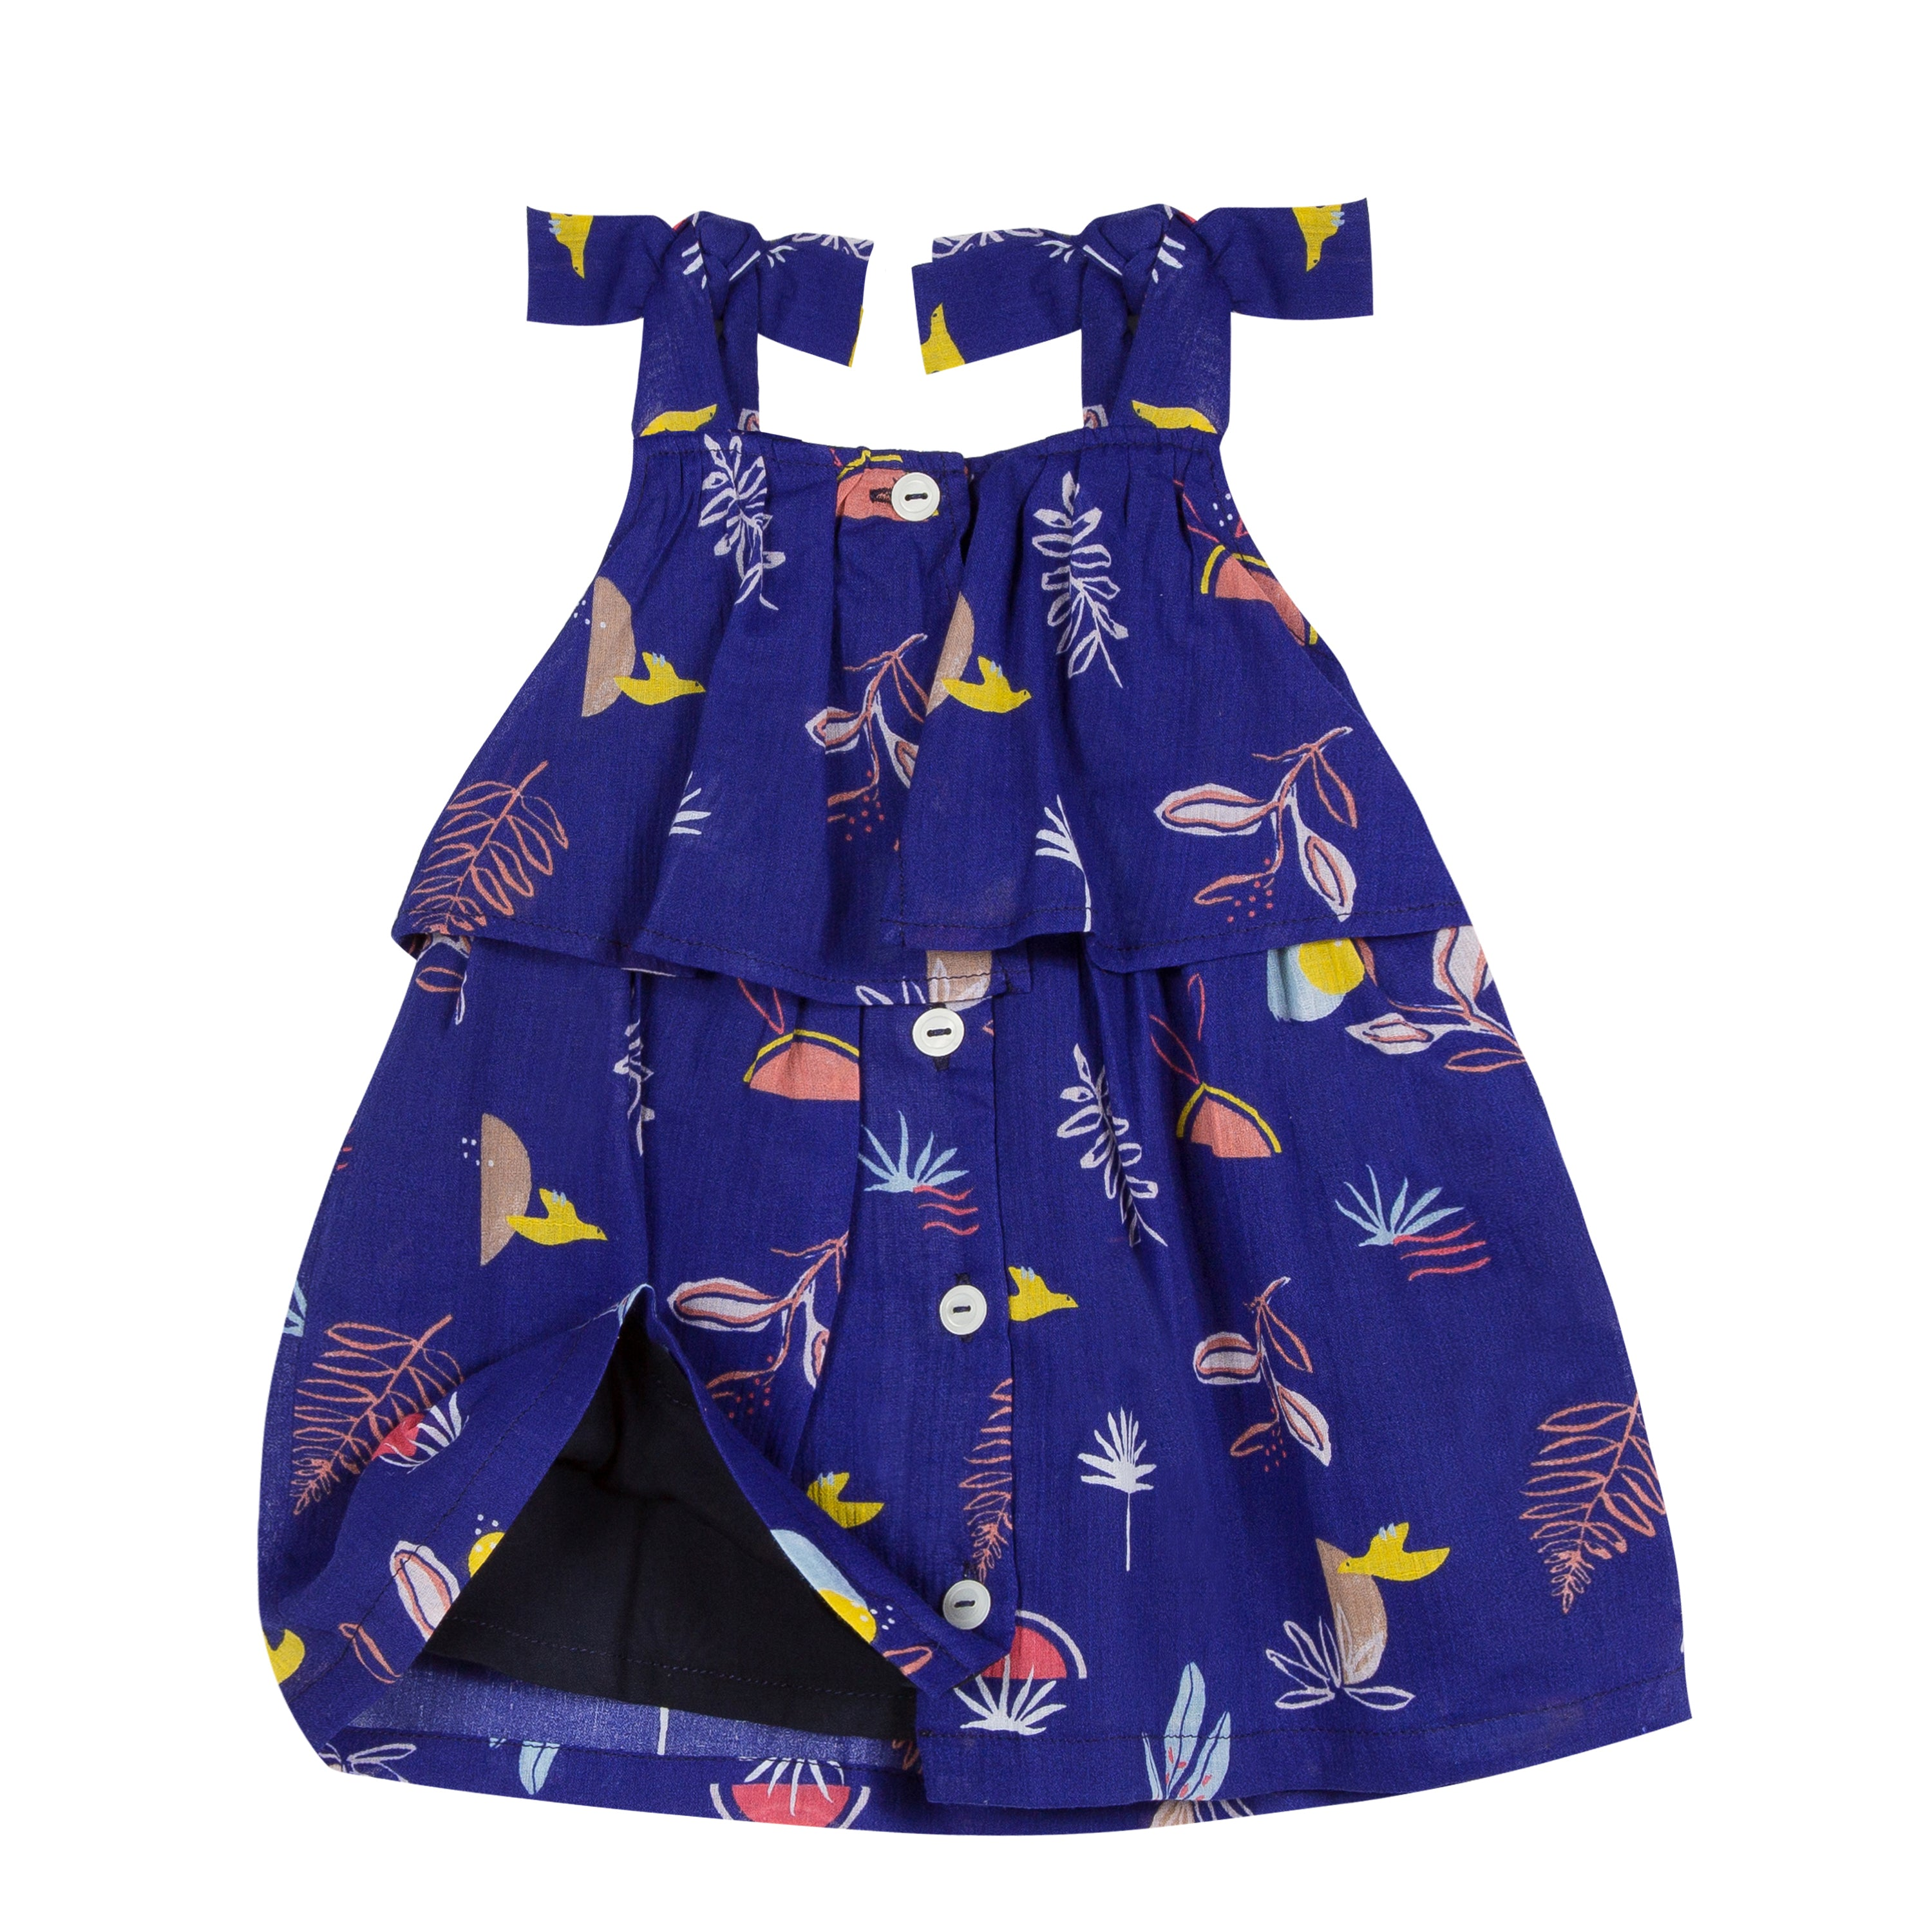 Baby & Toddler Girls Marine Printed Dress With Bows